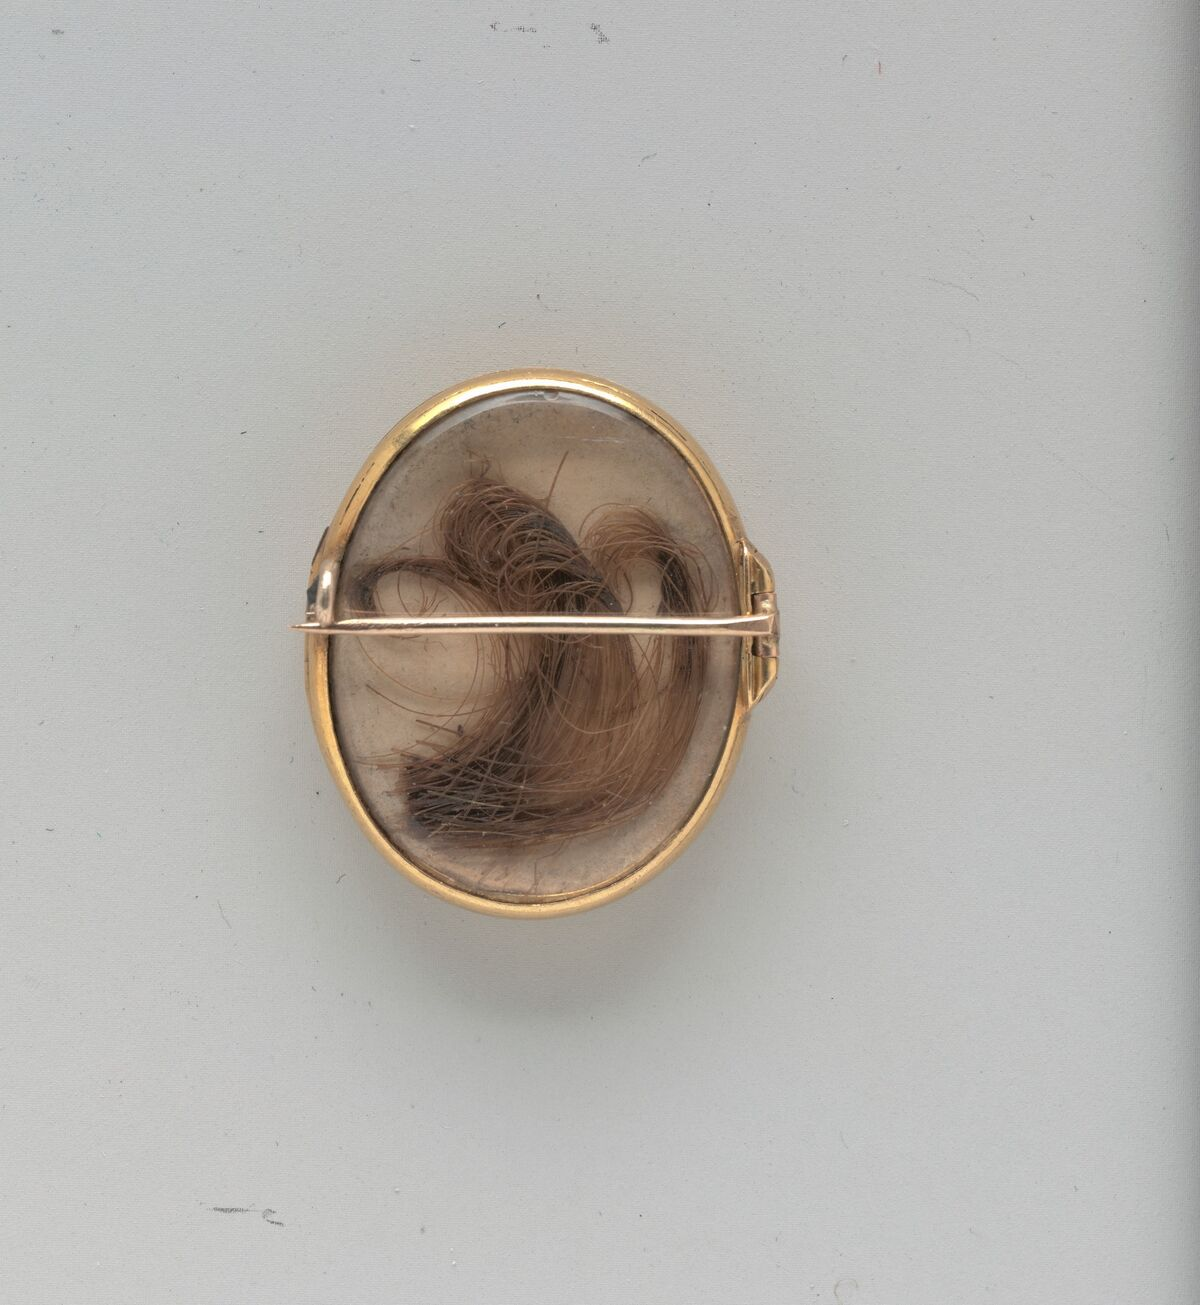 Lover's Eyes (back with lock of hair), ca. 1840. Courtesy of The Metropolitan Museum of Art.